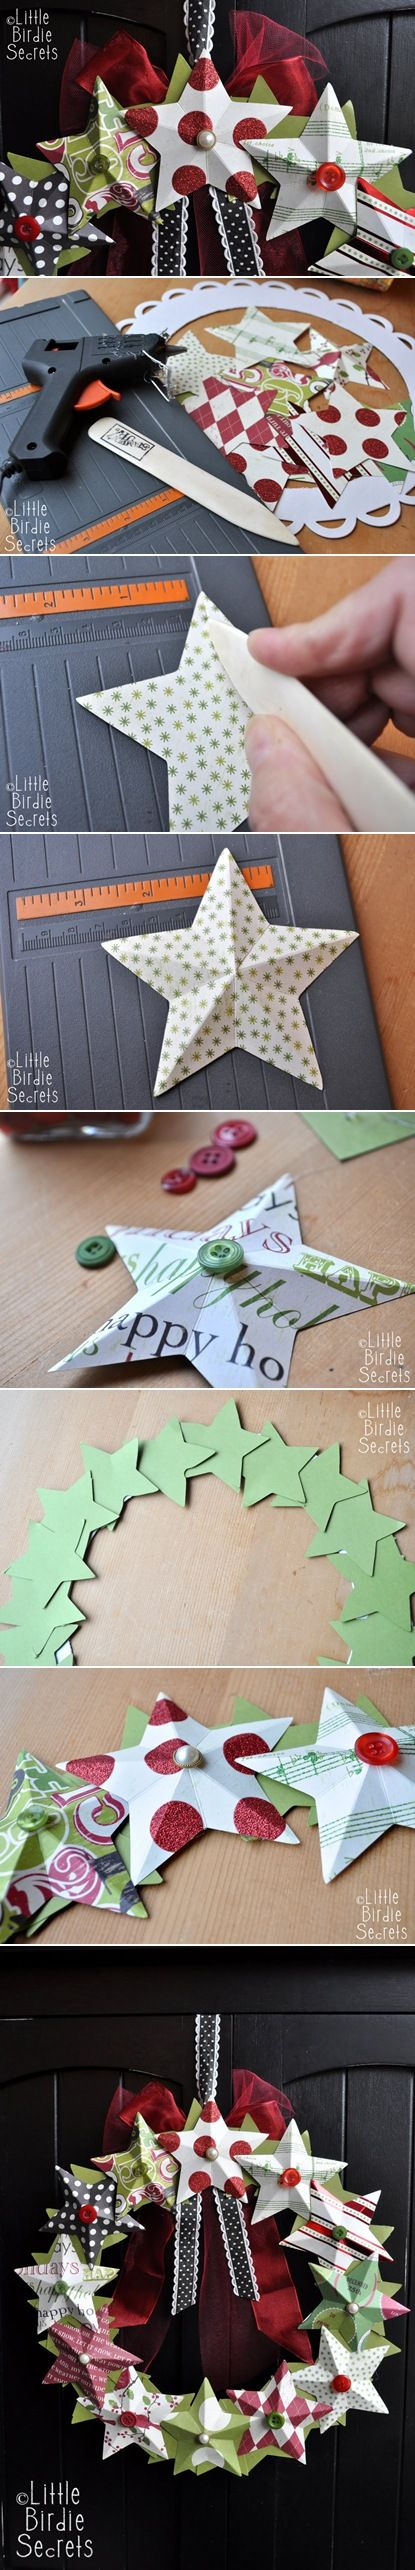 Stampin' Up! Stars Star Wreath Tutorial